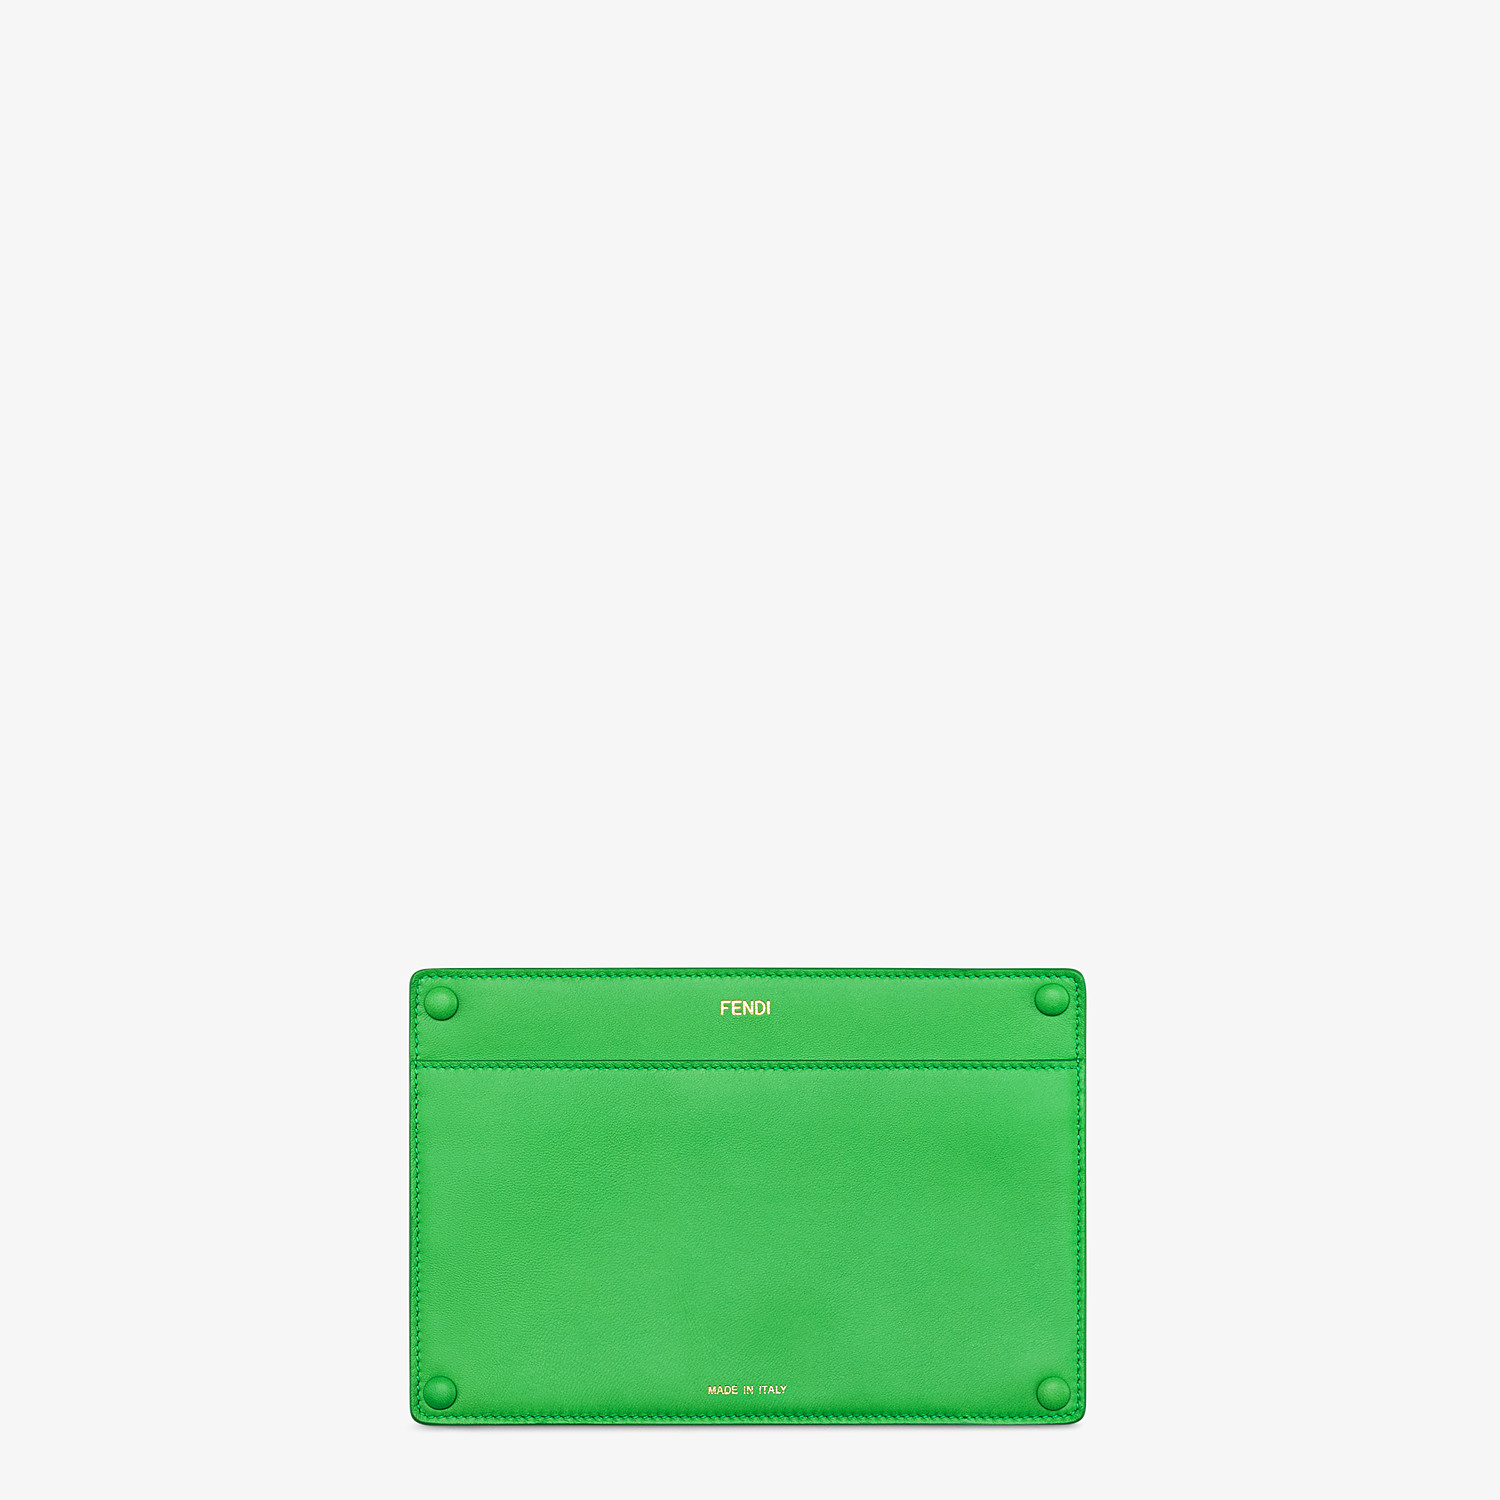 FENDI PEEKABOO ISEEU POCKET - Accessory pocket in green leather - view 1 detail